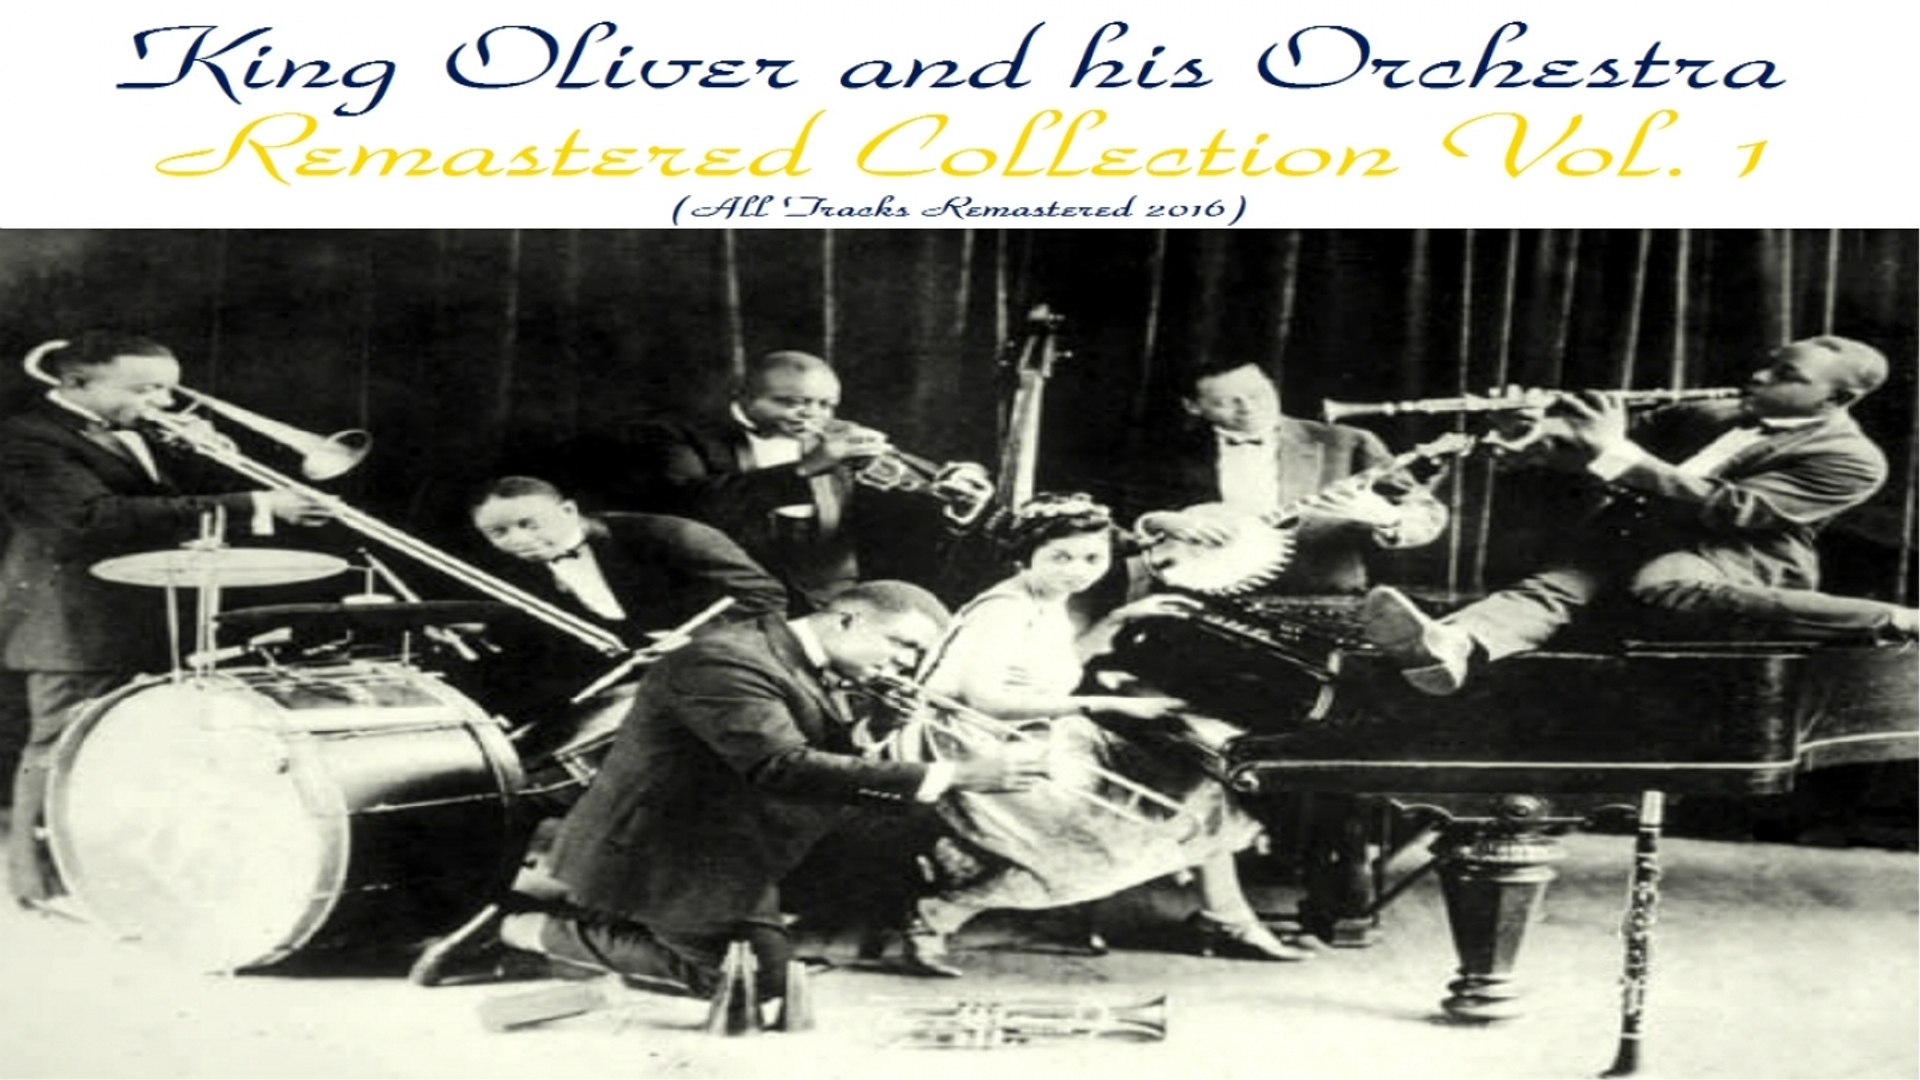 King Oliver and His Orchestra - Remastered Collection, Vol. 1 - Remastered 2016